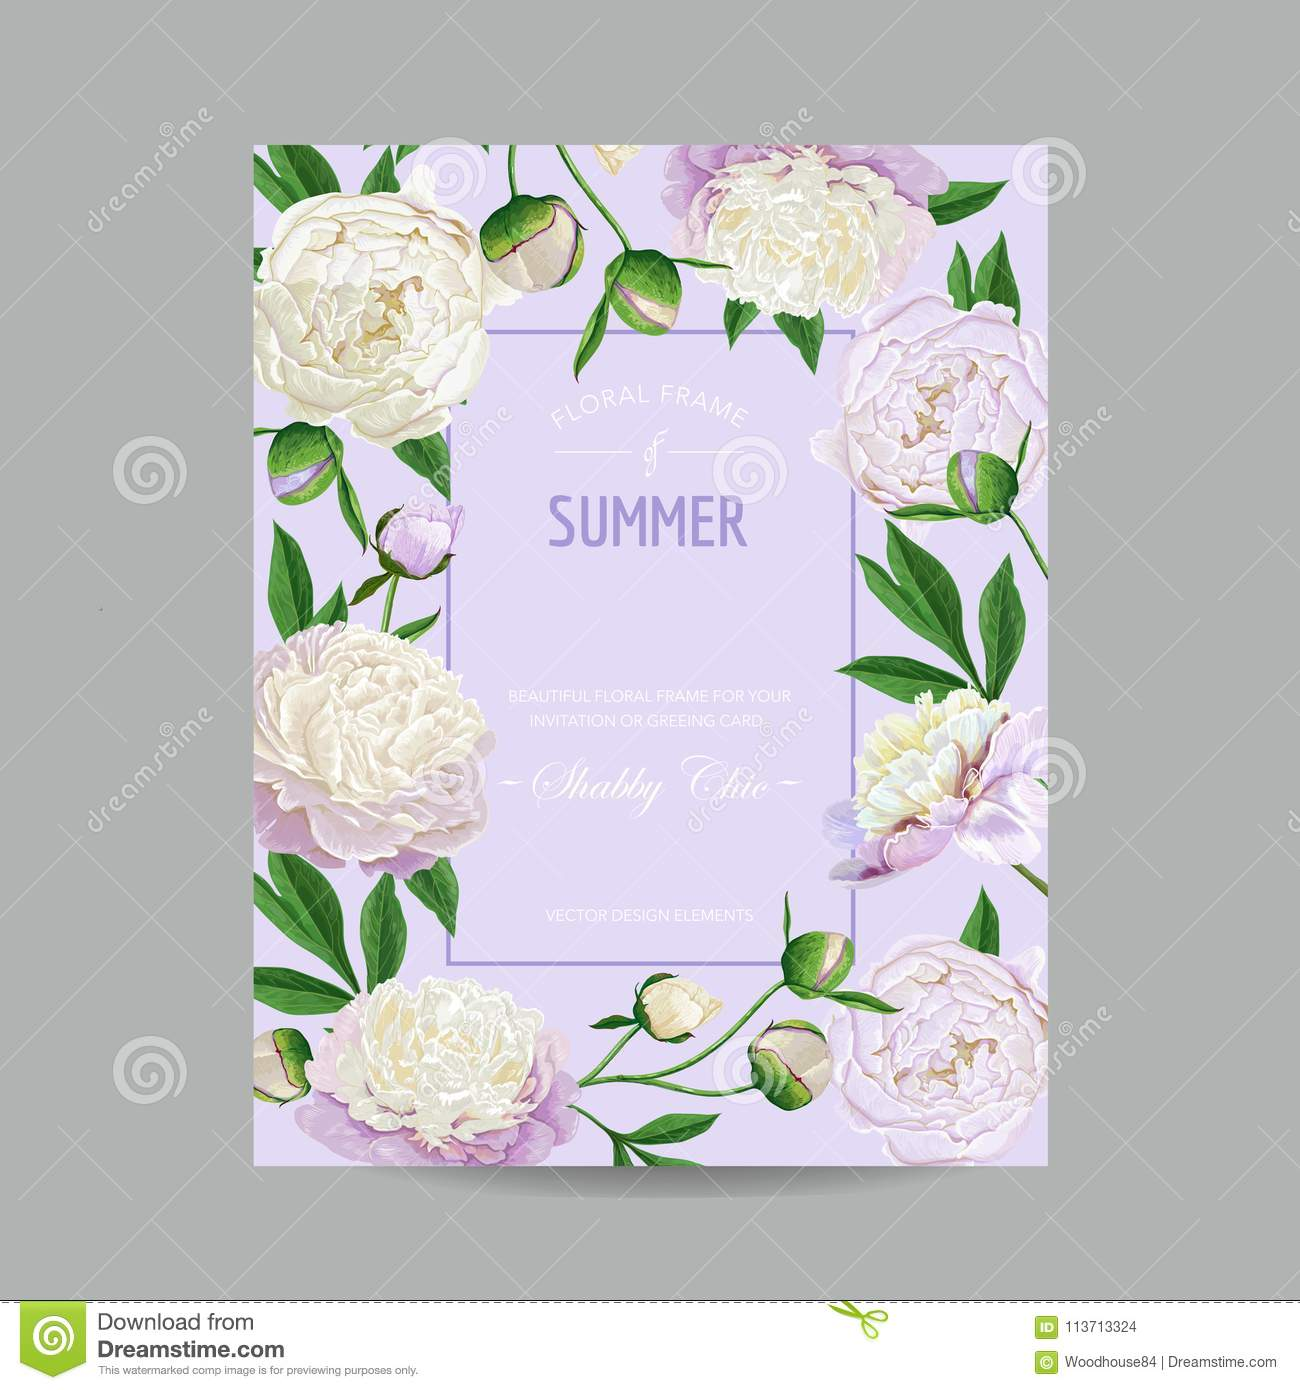 Hello Summer Floral Design With Blooming White Peonies Flowers